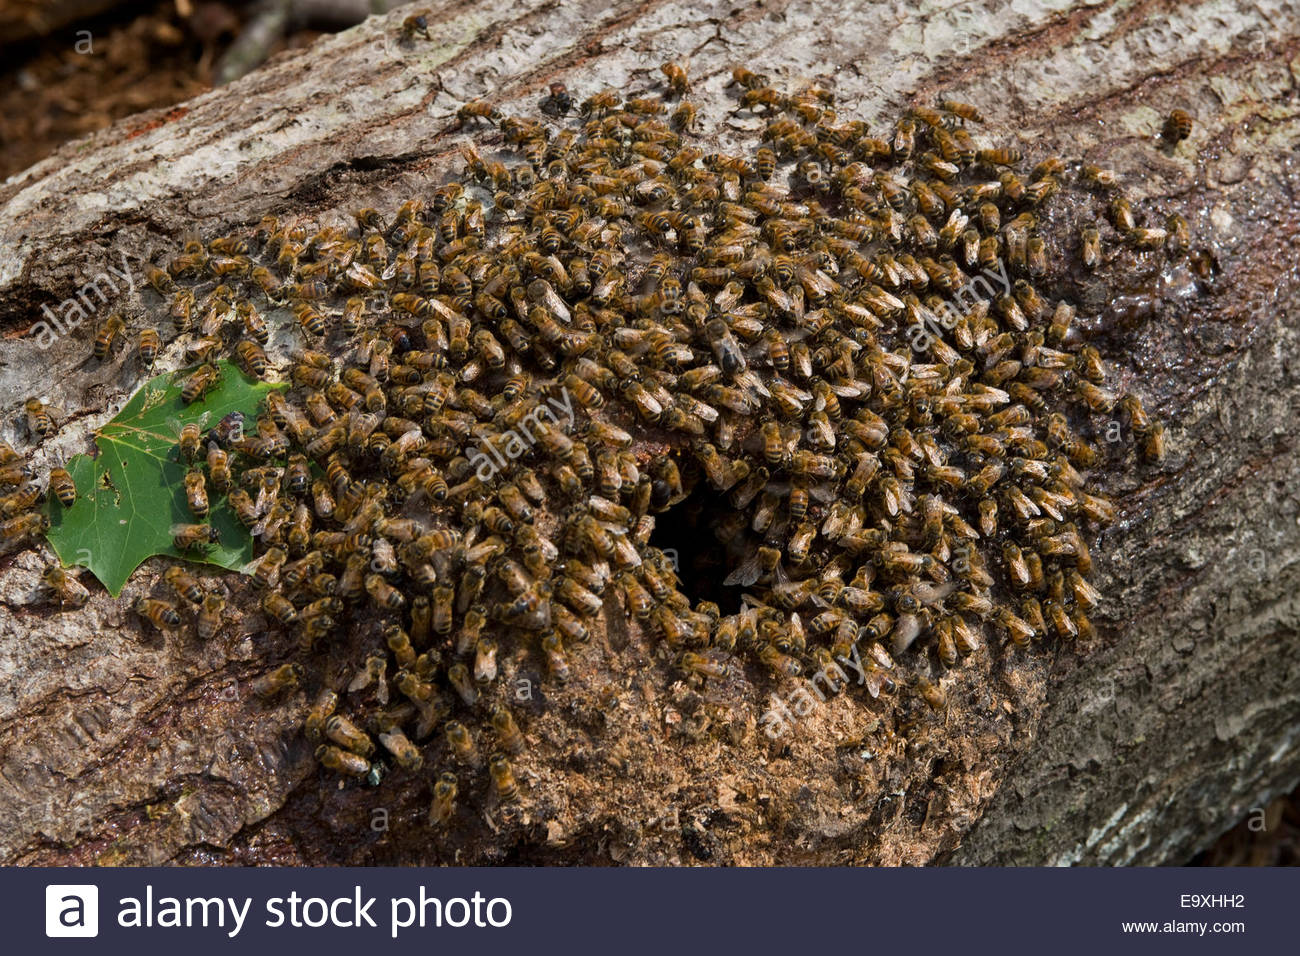 wild-honey-bees-swarm-around-the-opening-of-a-hollow-log-in-which-E9XHH2